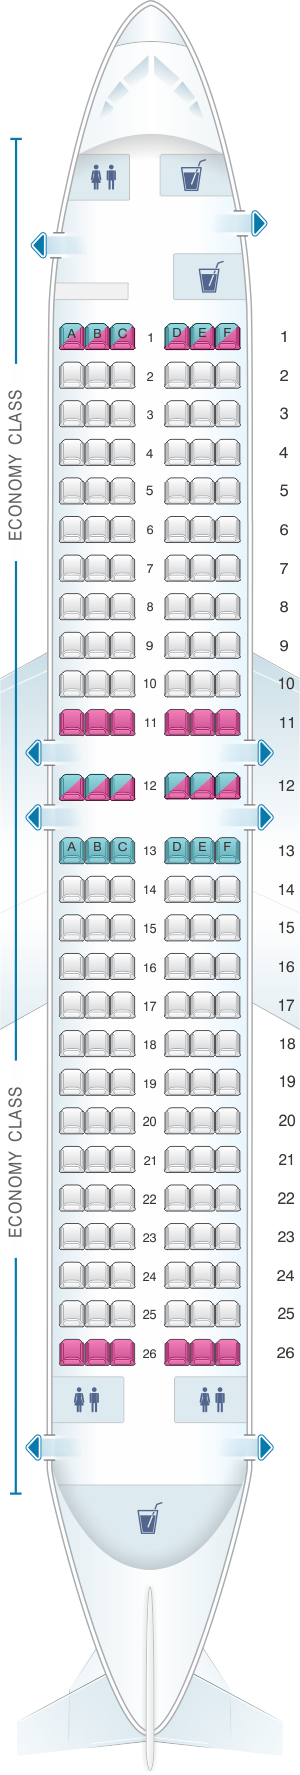 Seat map for Xtra Airways Boeing B737 400 156pax